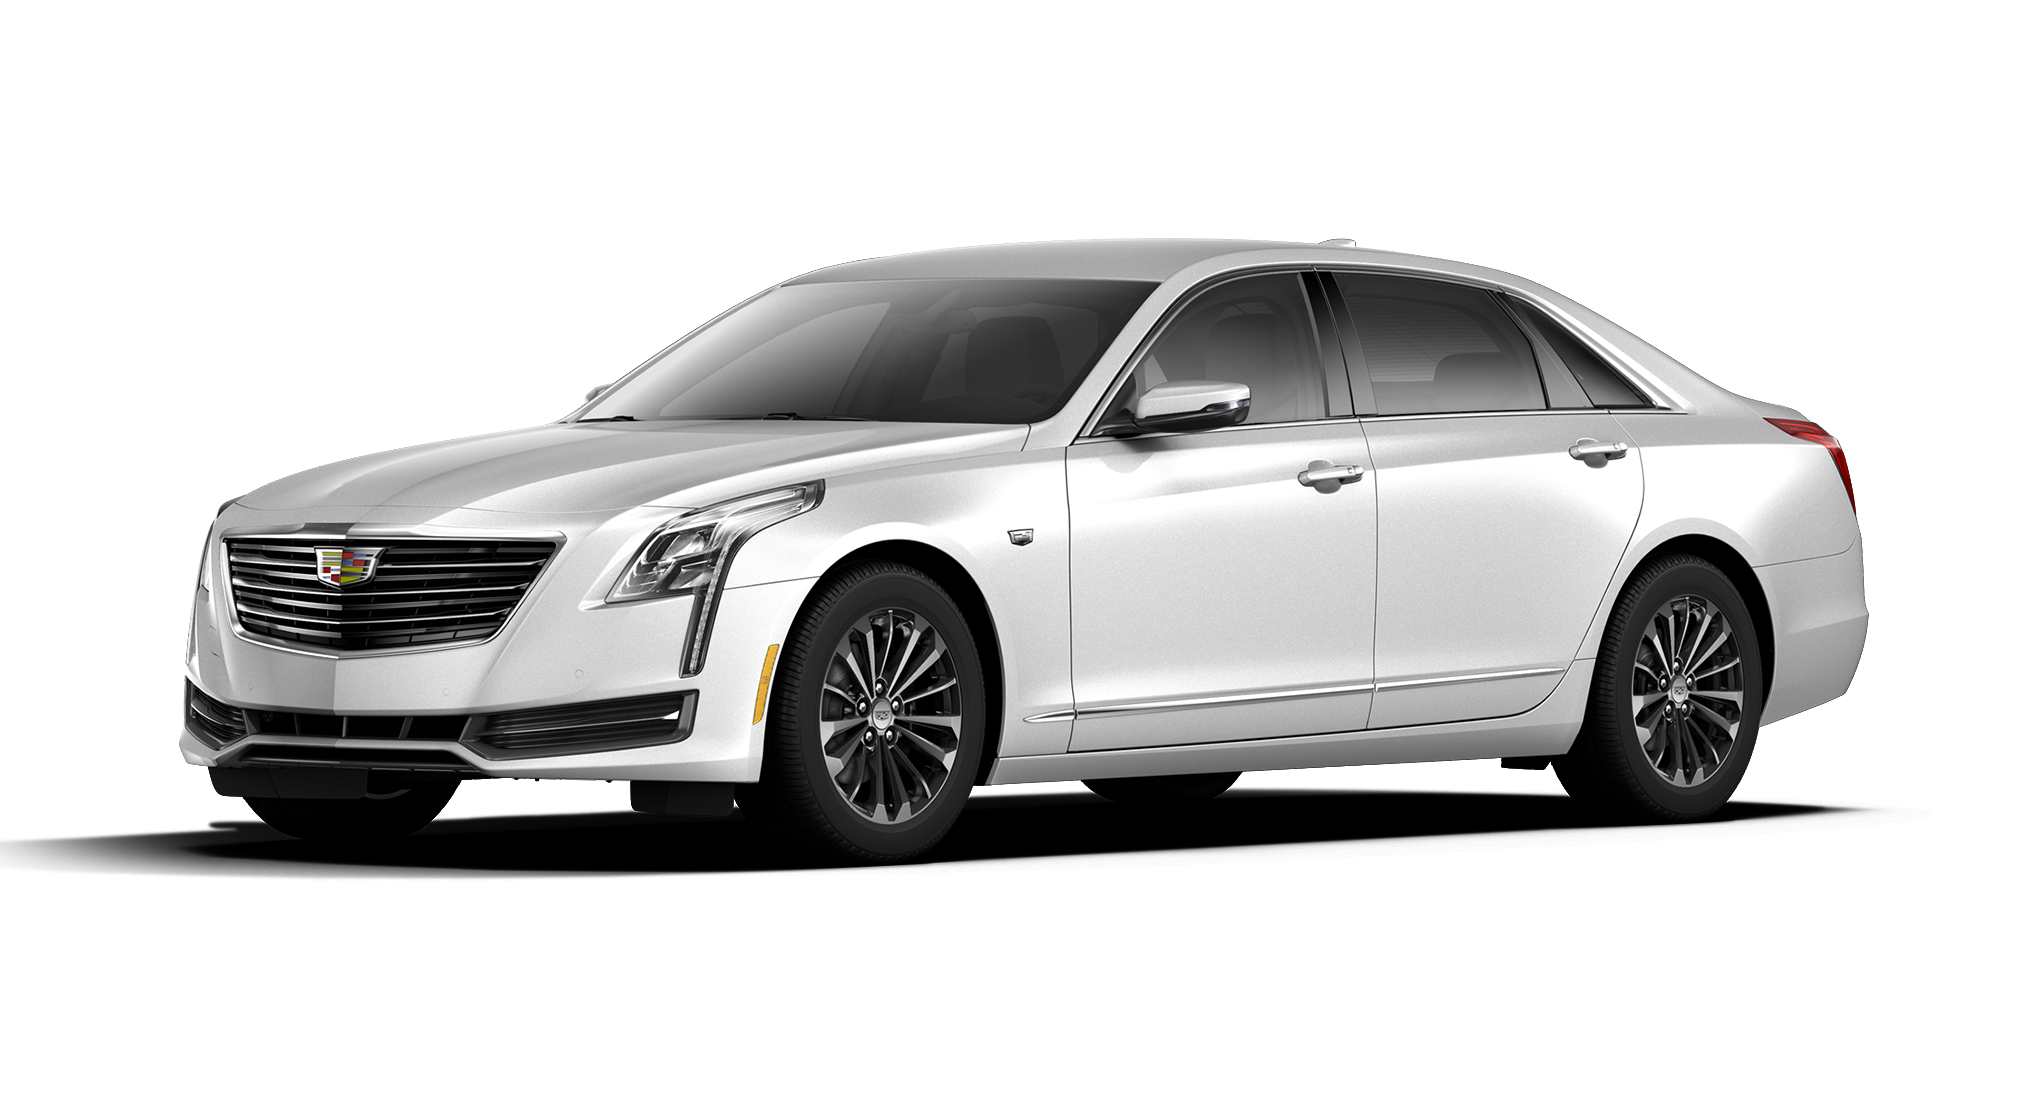 2017 Crystal White Tricoat Cadillac CT6